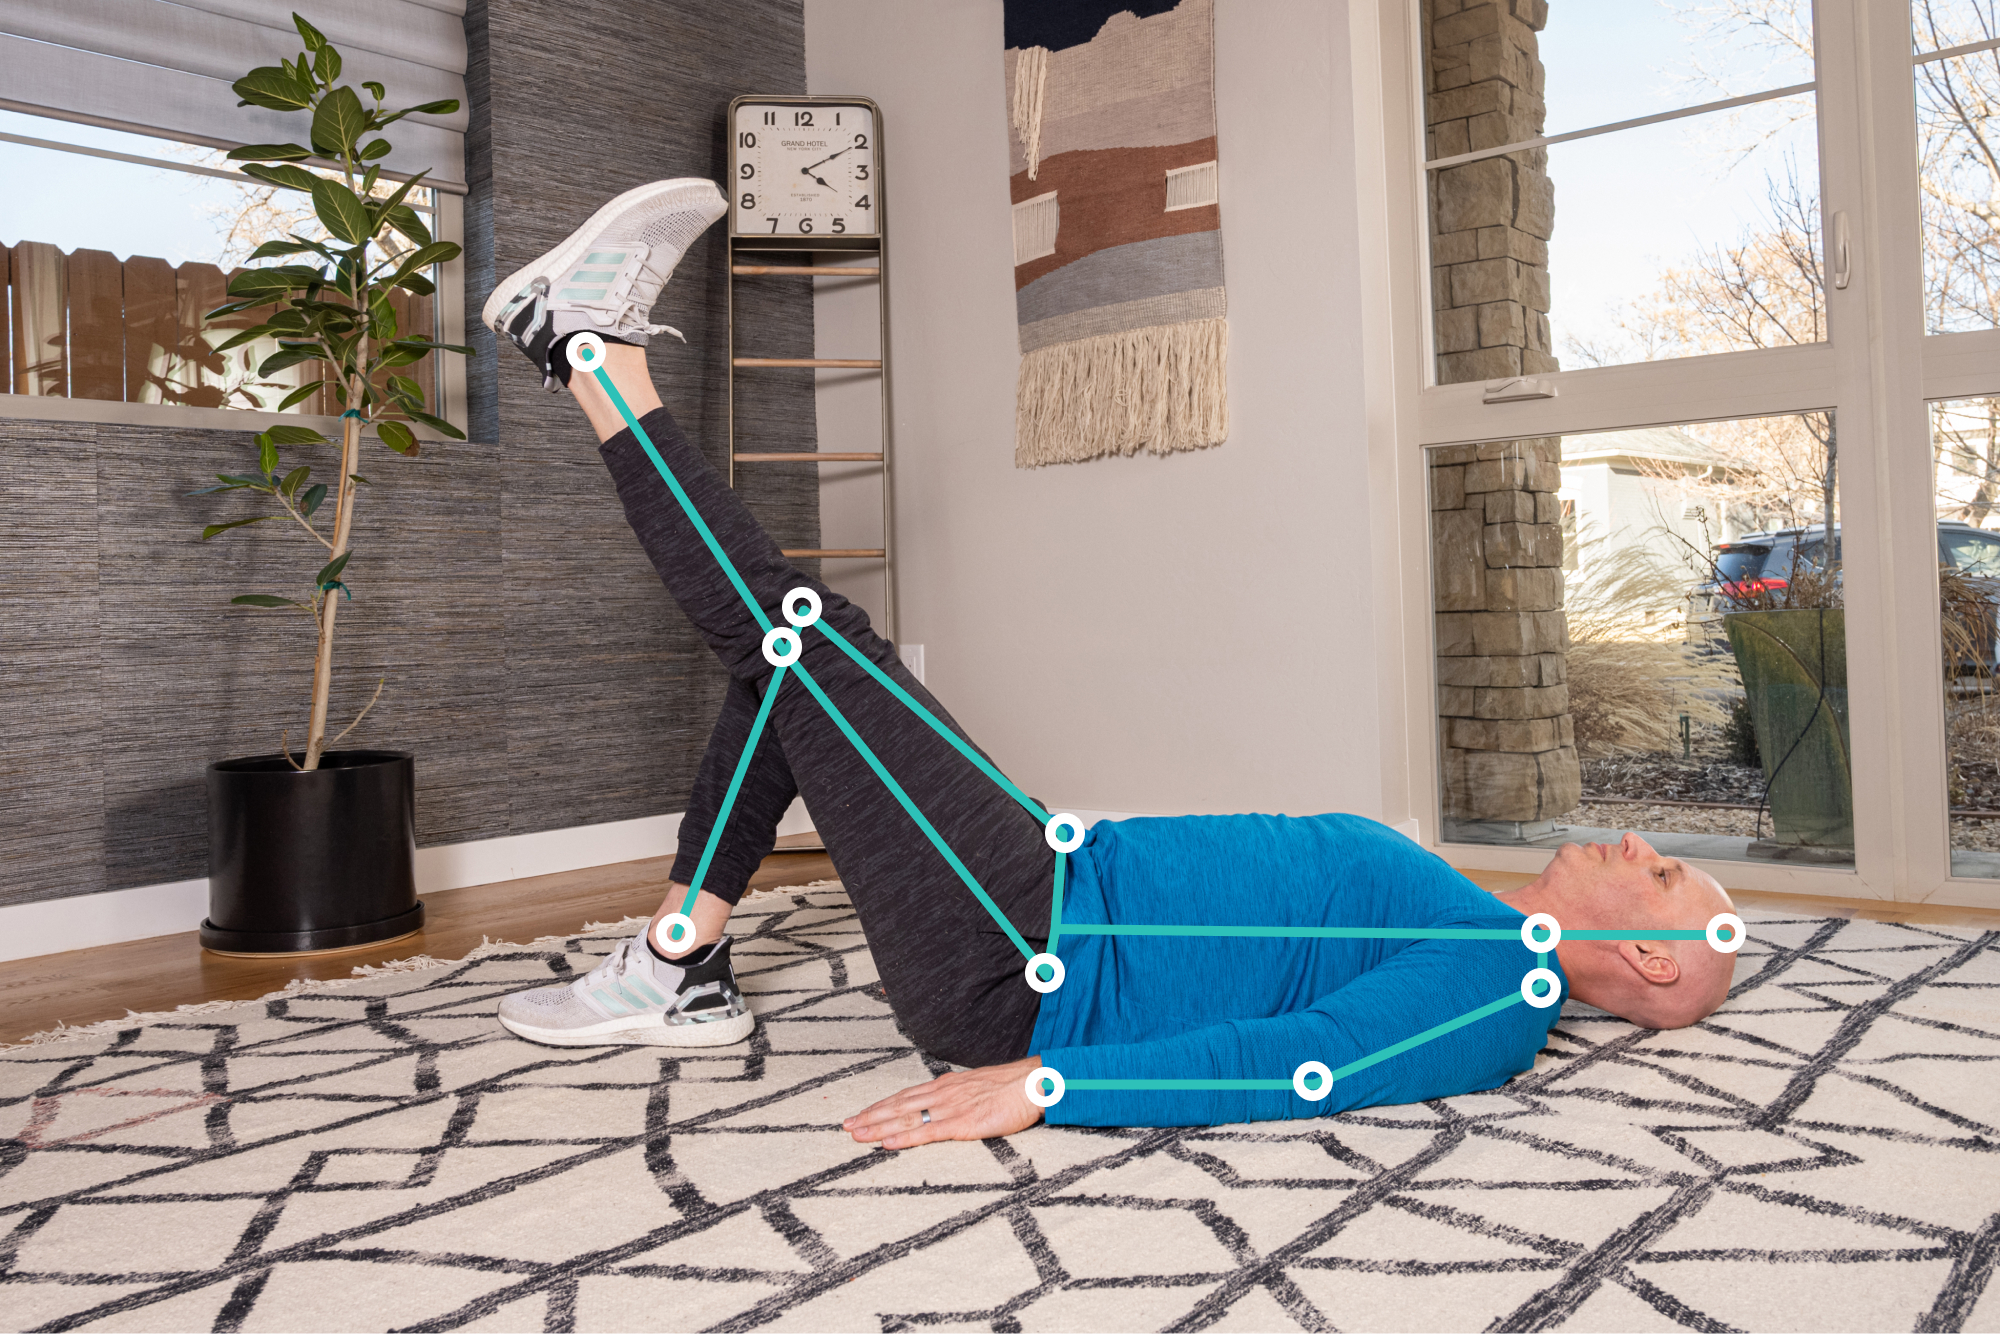 Exer Physio is a digital physical therapy app that uses AI to measure home exercise protocols and range of motion.